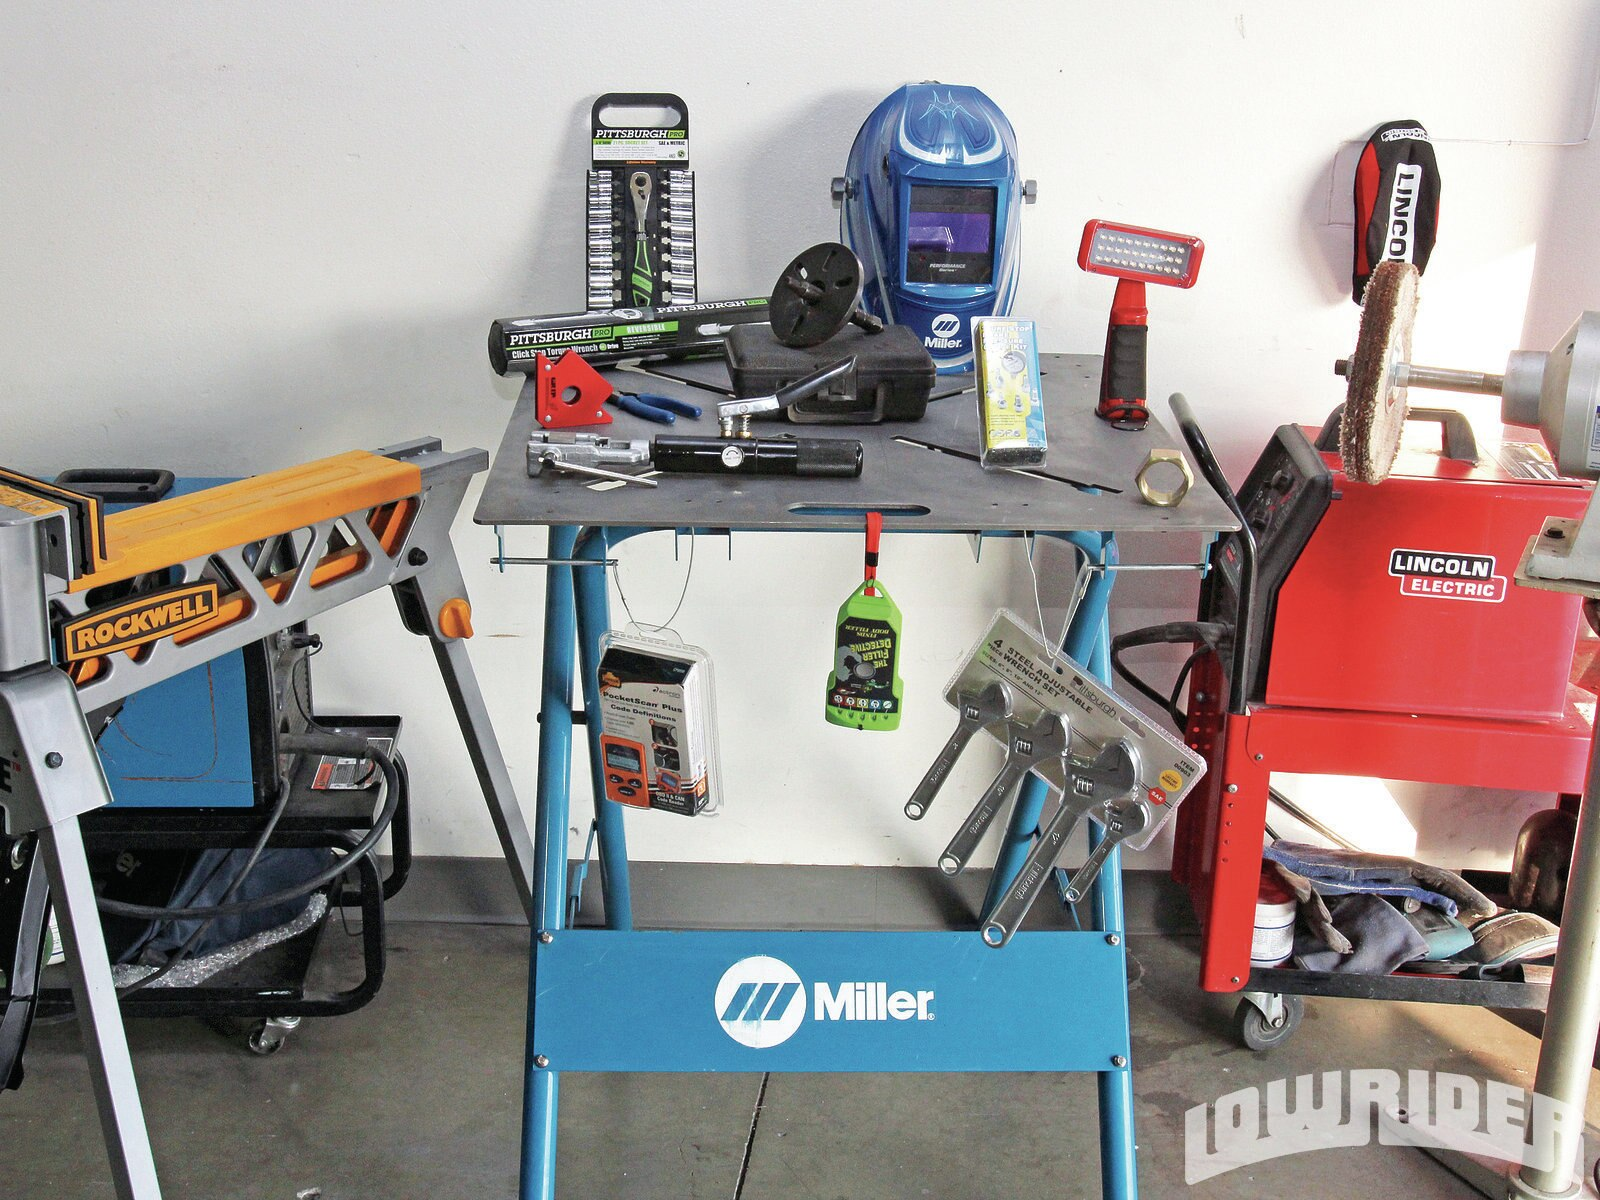 1202-lrmp-01-o-do-it-yourself-tools-cool-tools-line-up1